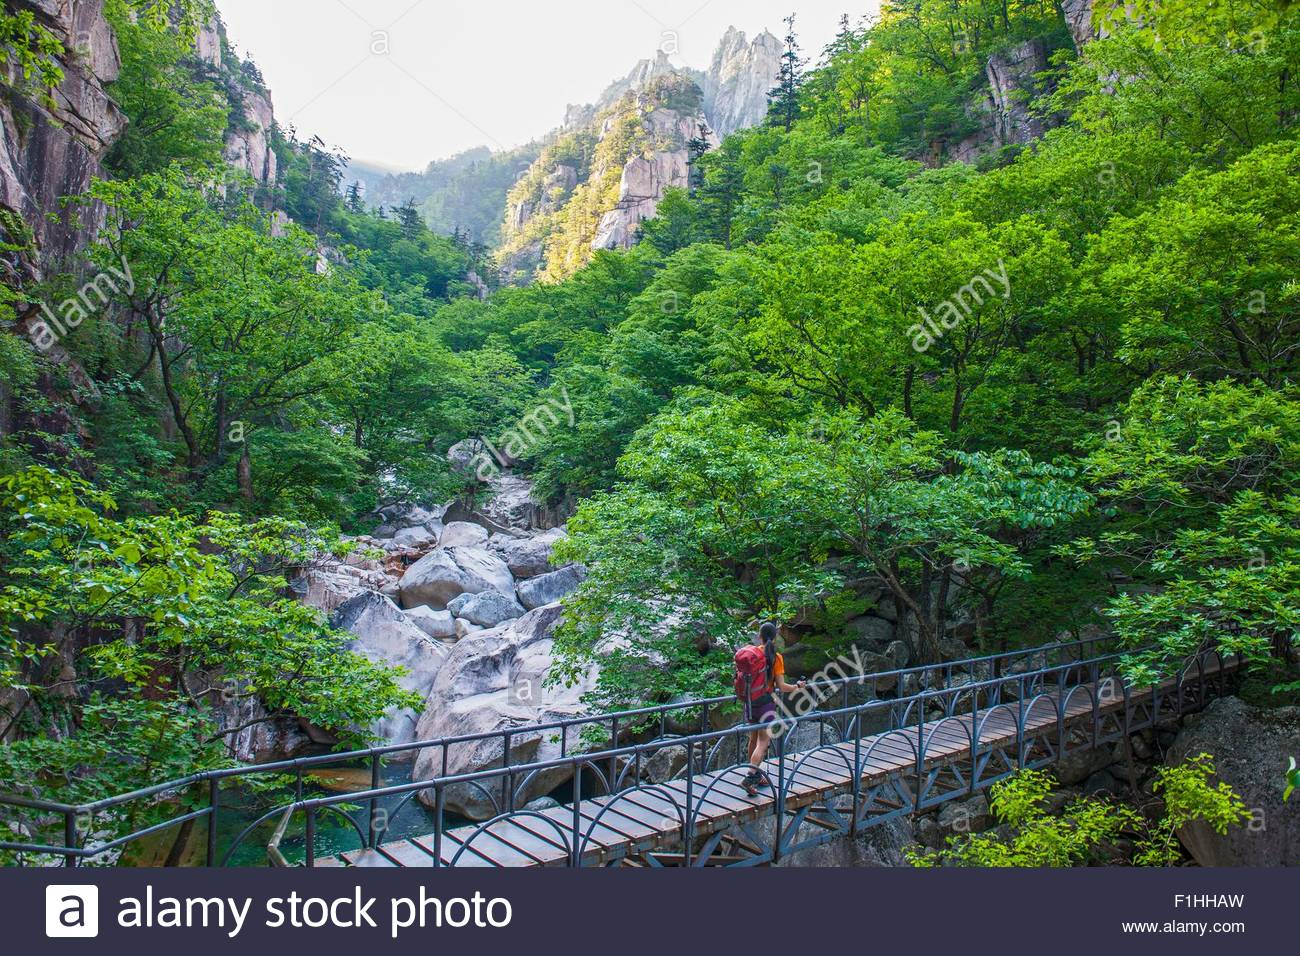 Female hiker crossing footbridge on way to Daecheongbong peak,  Seoraksan National Park in South Korea - Stock Image